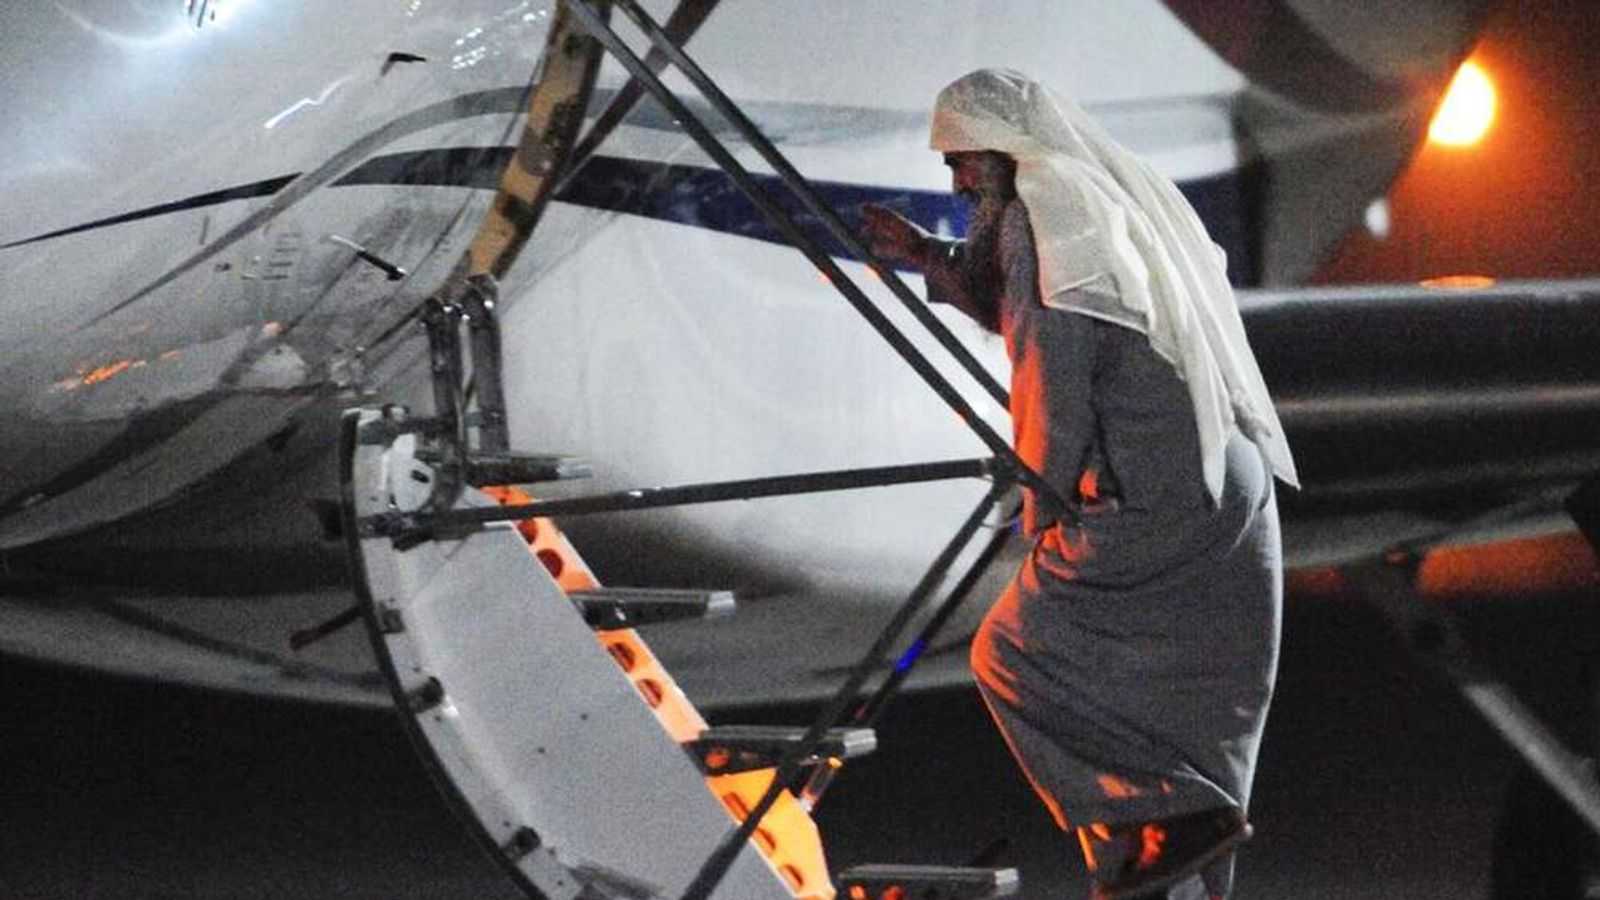 Abu Qatada boards plane at RAF Northolt